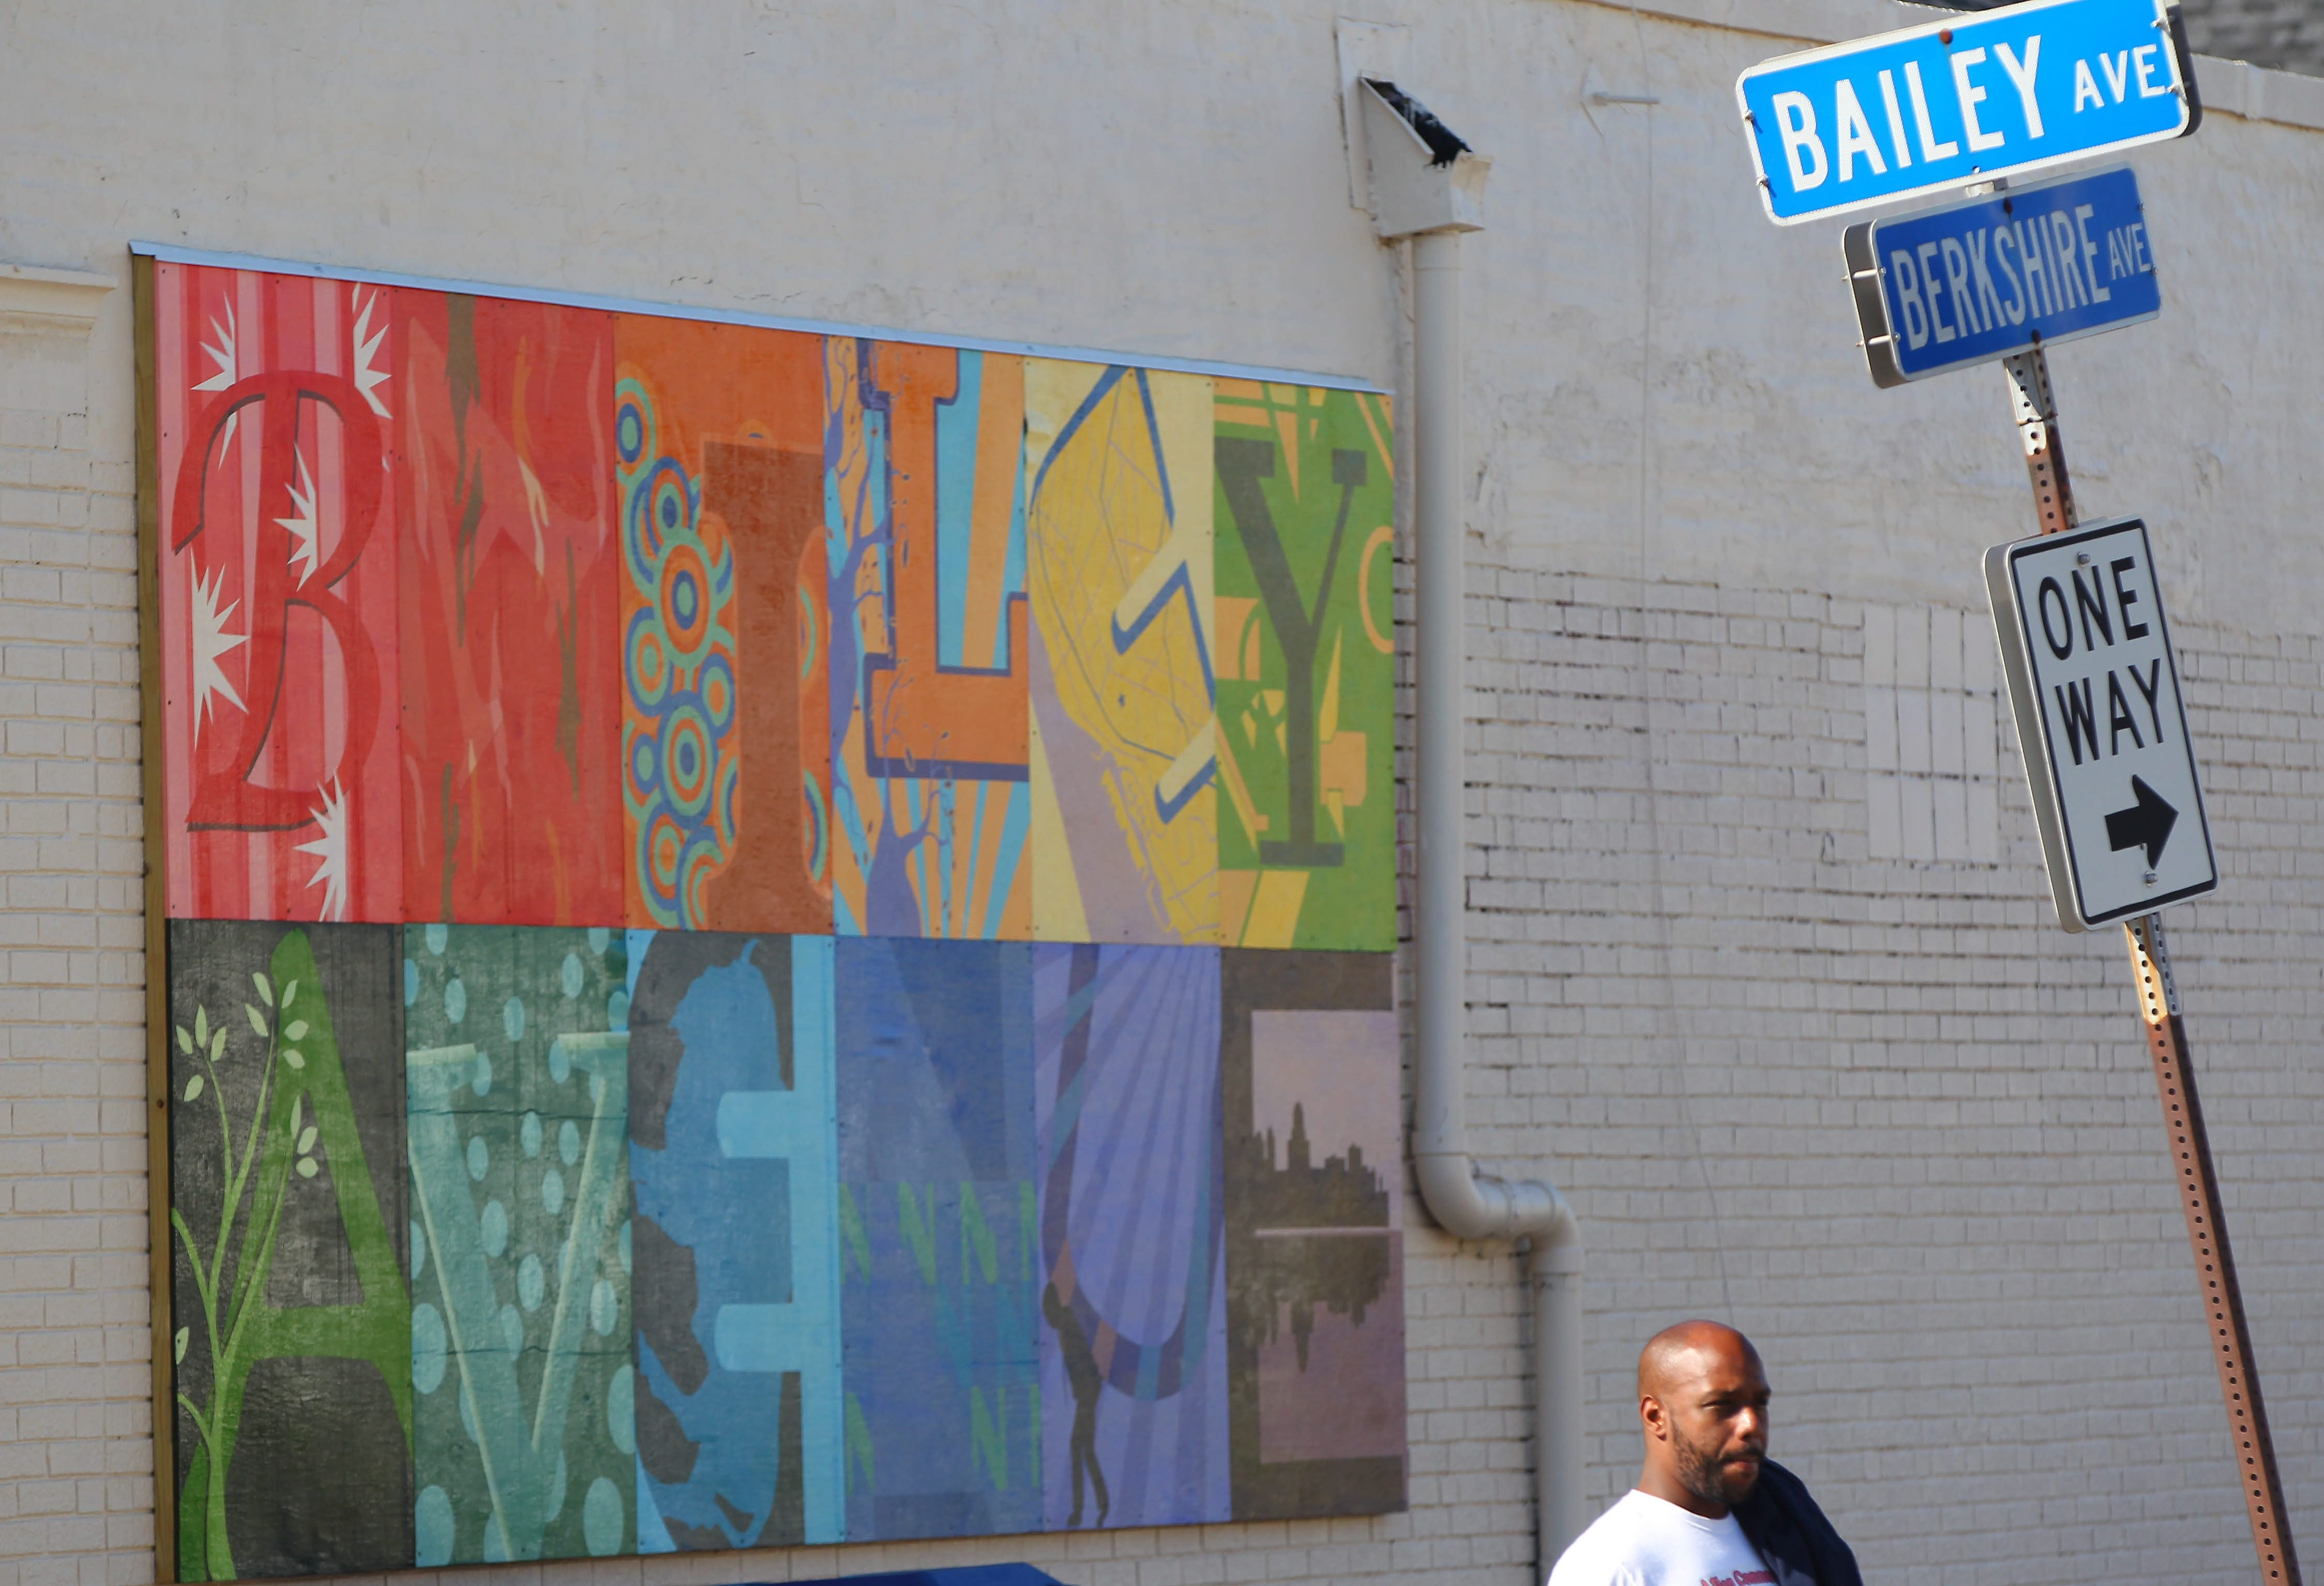 More than half of the 150 properties along Bailey Avenue are considered dilapidated by the Bailey Avenue Business Association. Some of the properties, however, have received a fresh coat of paint with the goal of attracting mixed-use development of the vacant buildings.